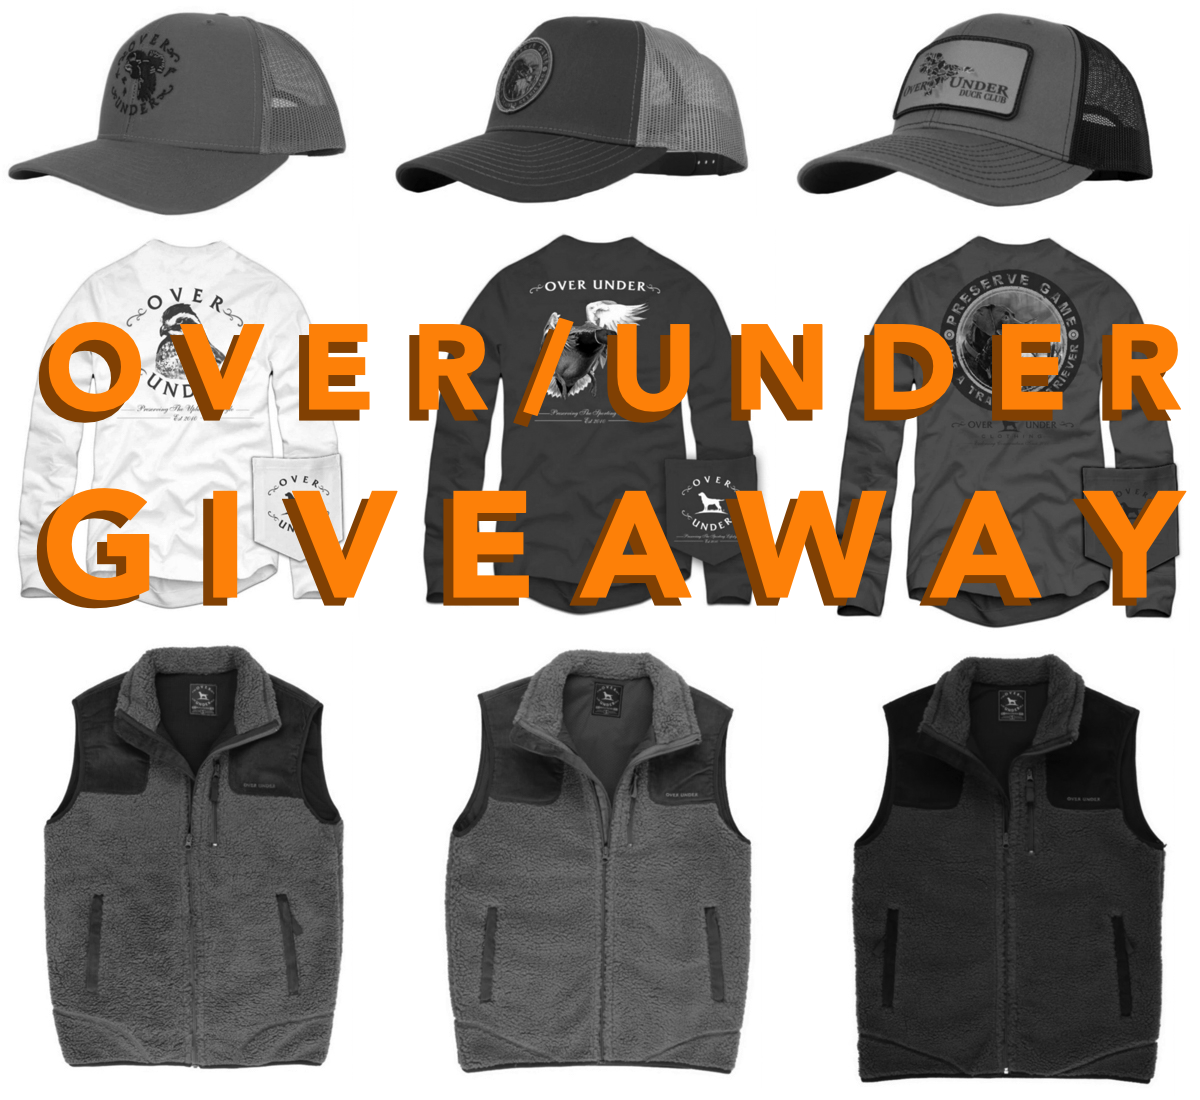 Over / Under Fall Giveaway